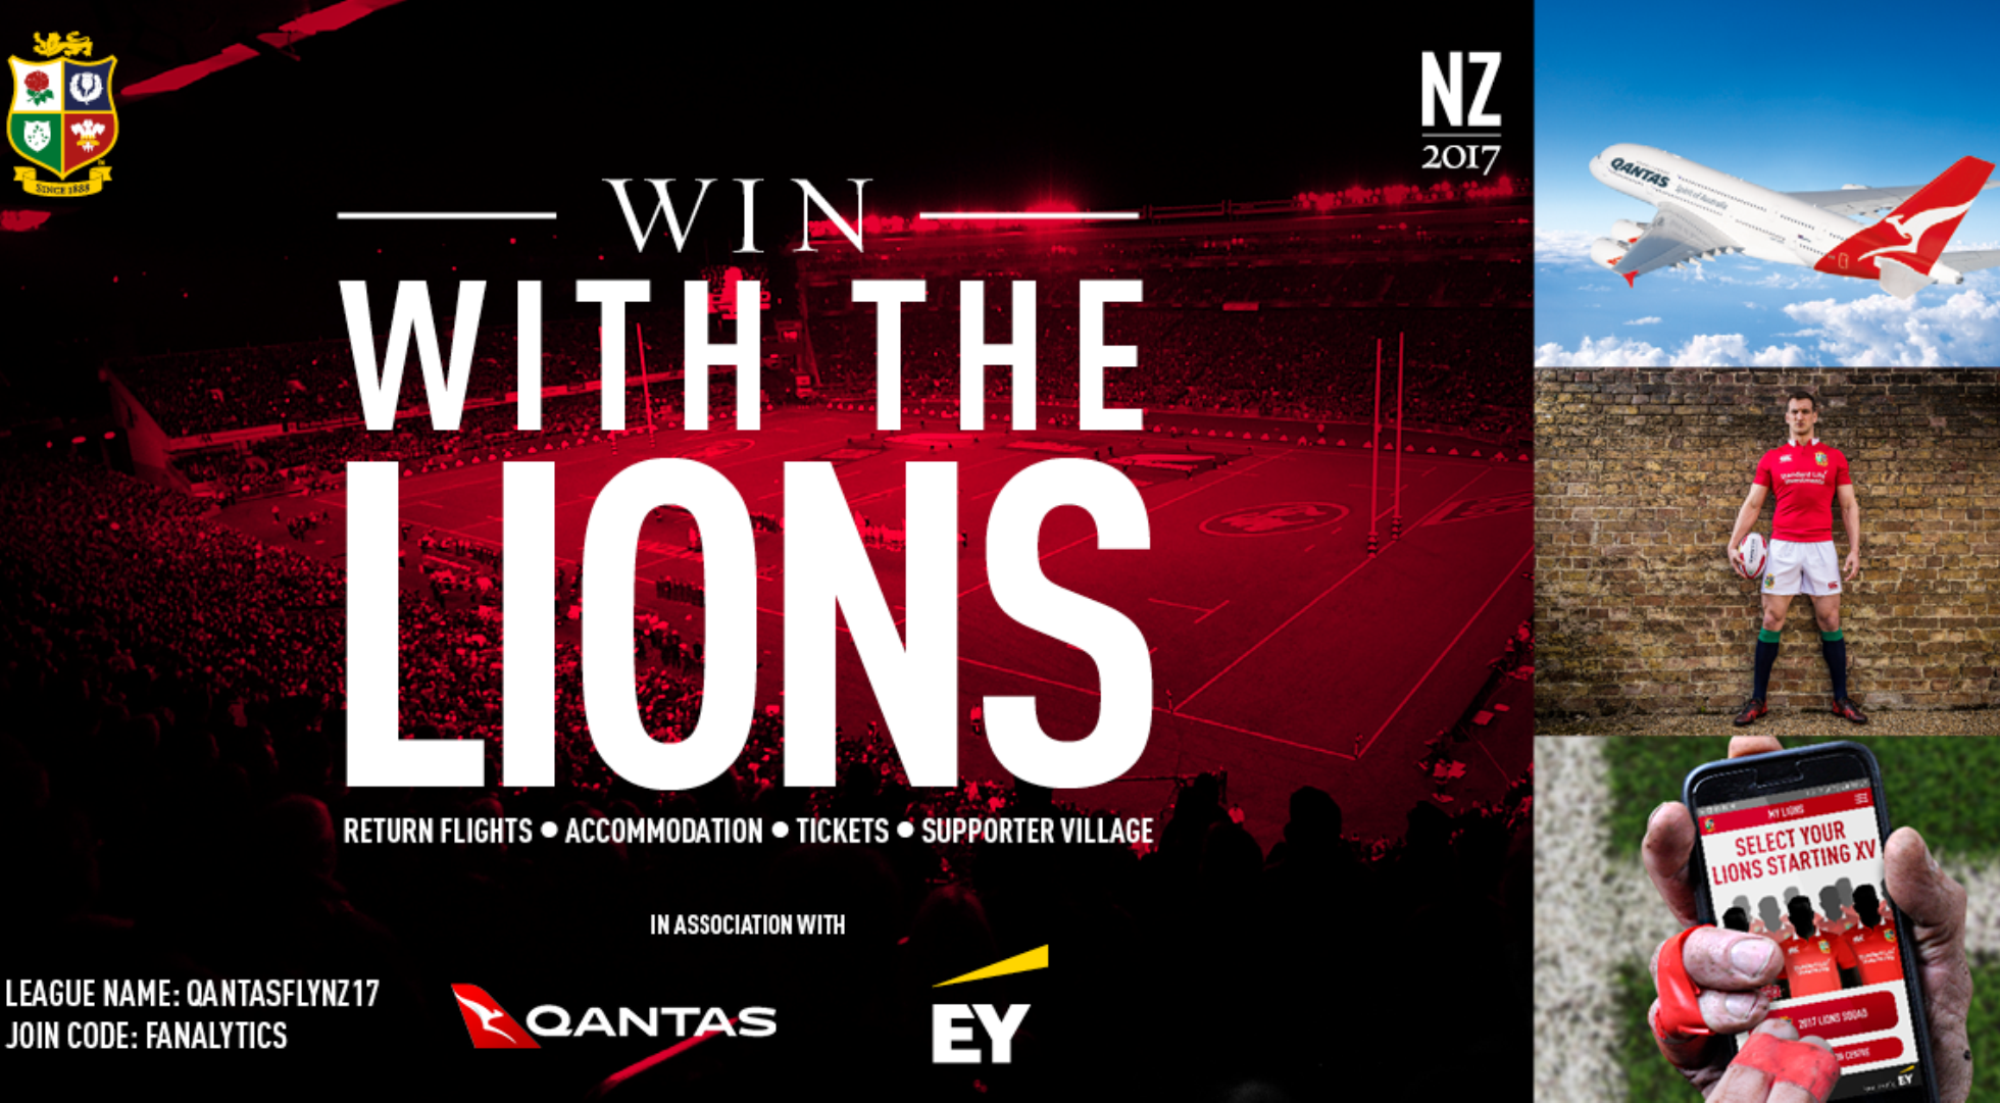 Win with Qantas and EY